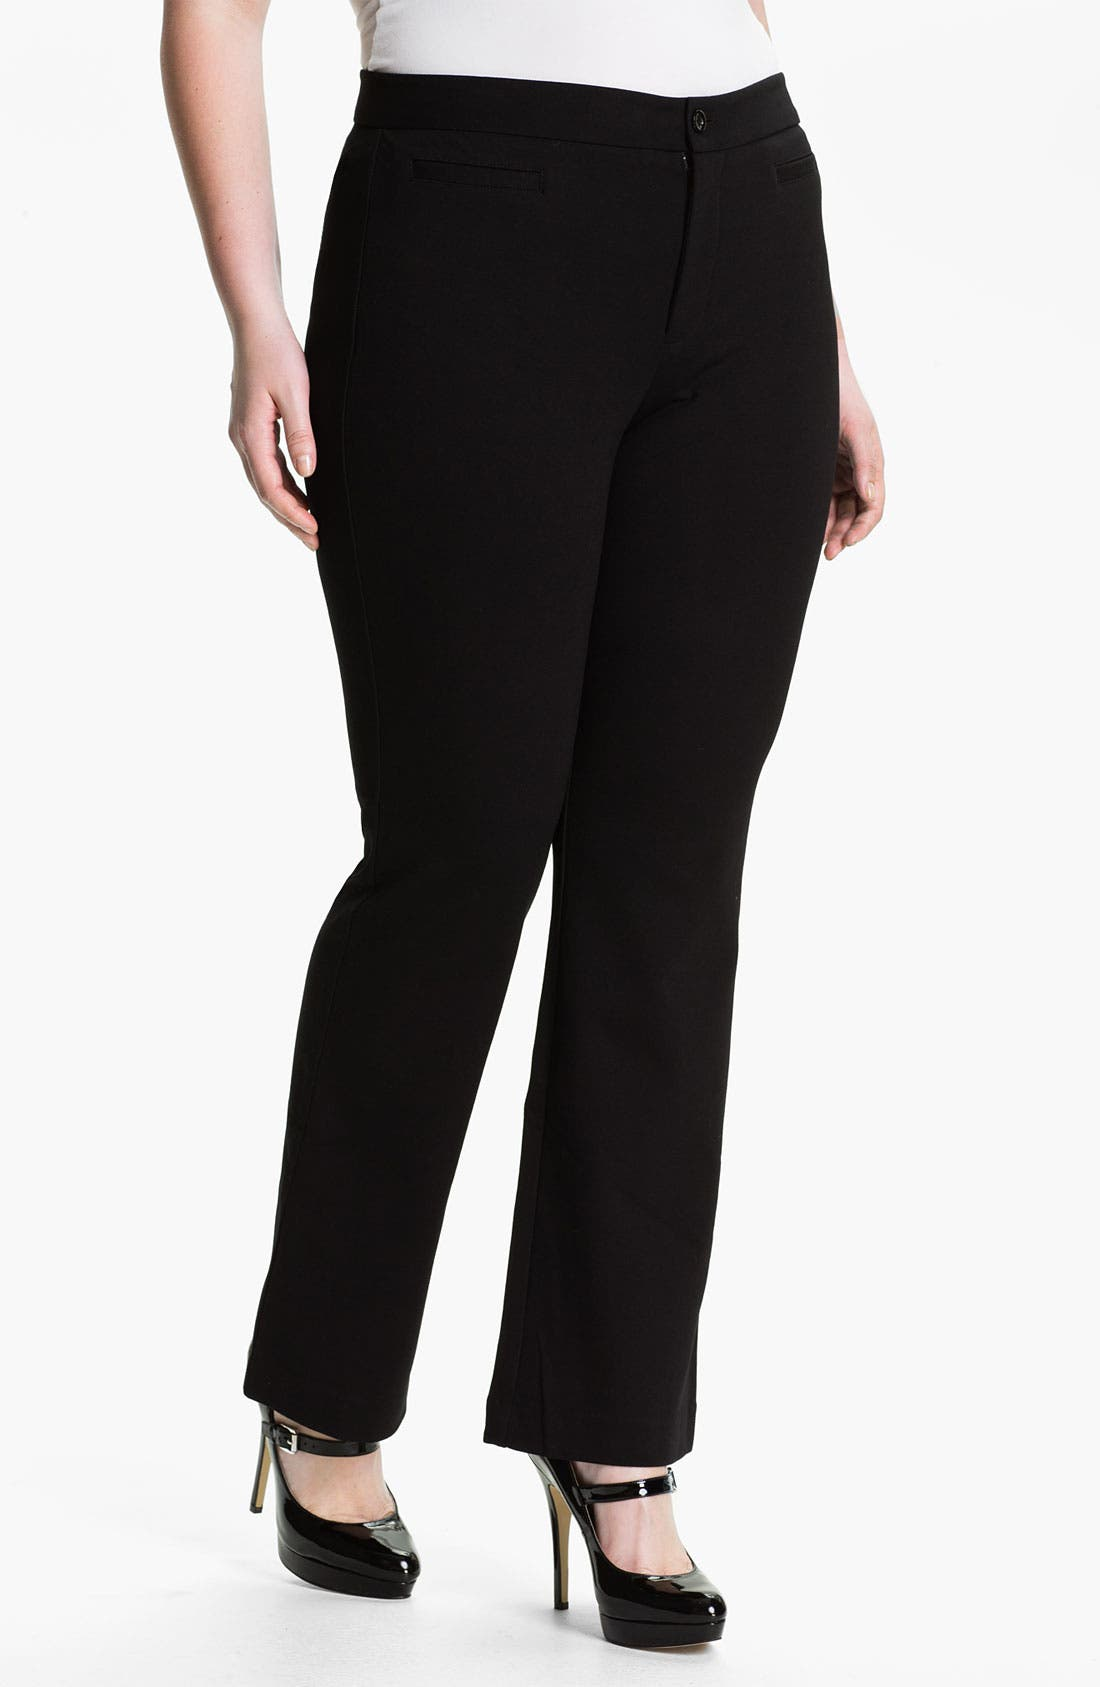 Alternate Image 1 Selected - NYDJ Ponte Knit Trousers (Plus)